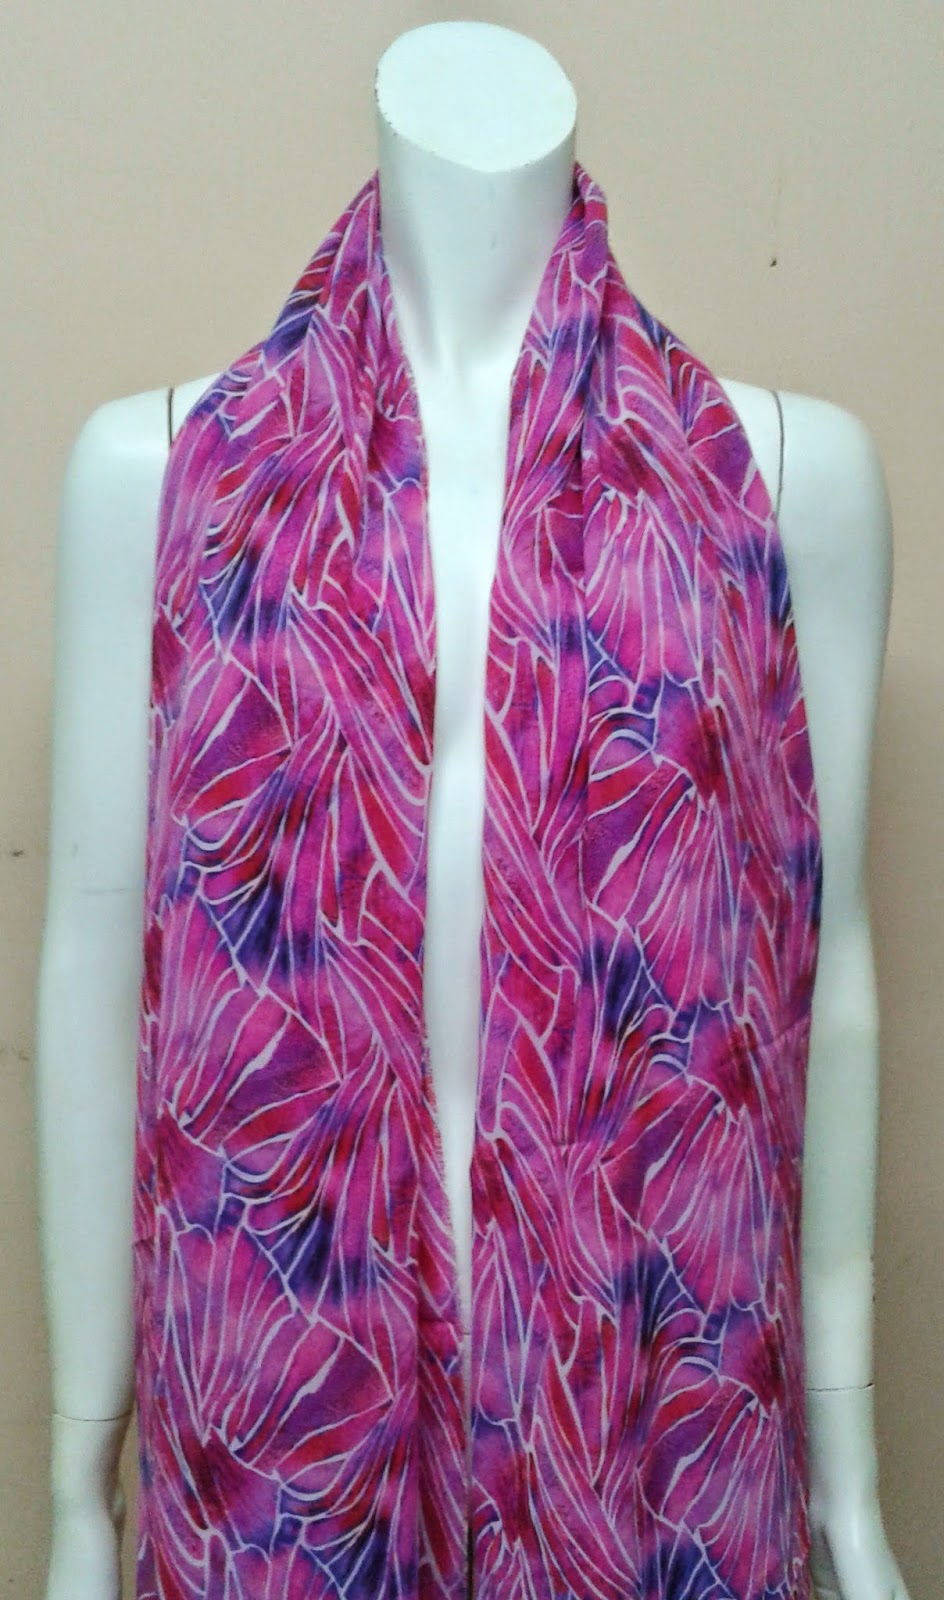 http://dzethiniecouture.wix.com/dzethiniecouture#!product/prd1/1974896135/flower-petals-printed-shawl-pink